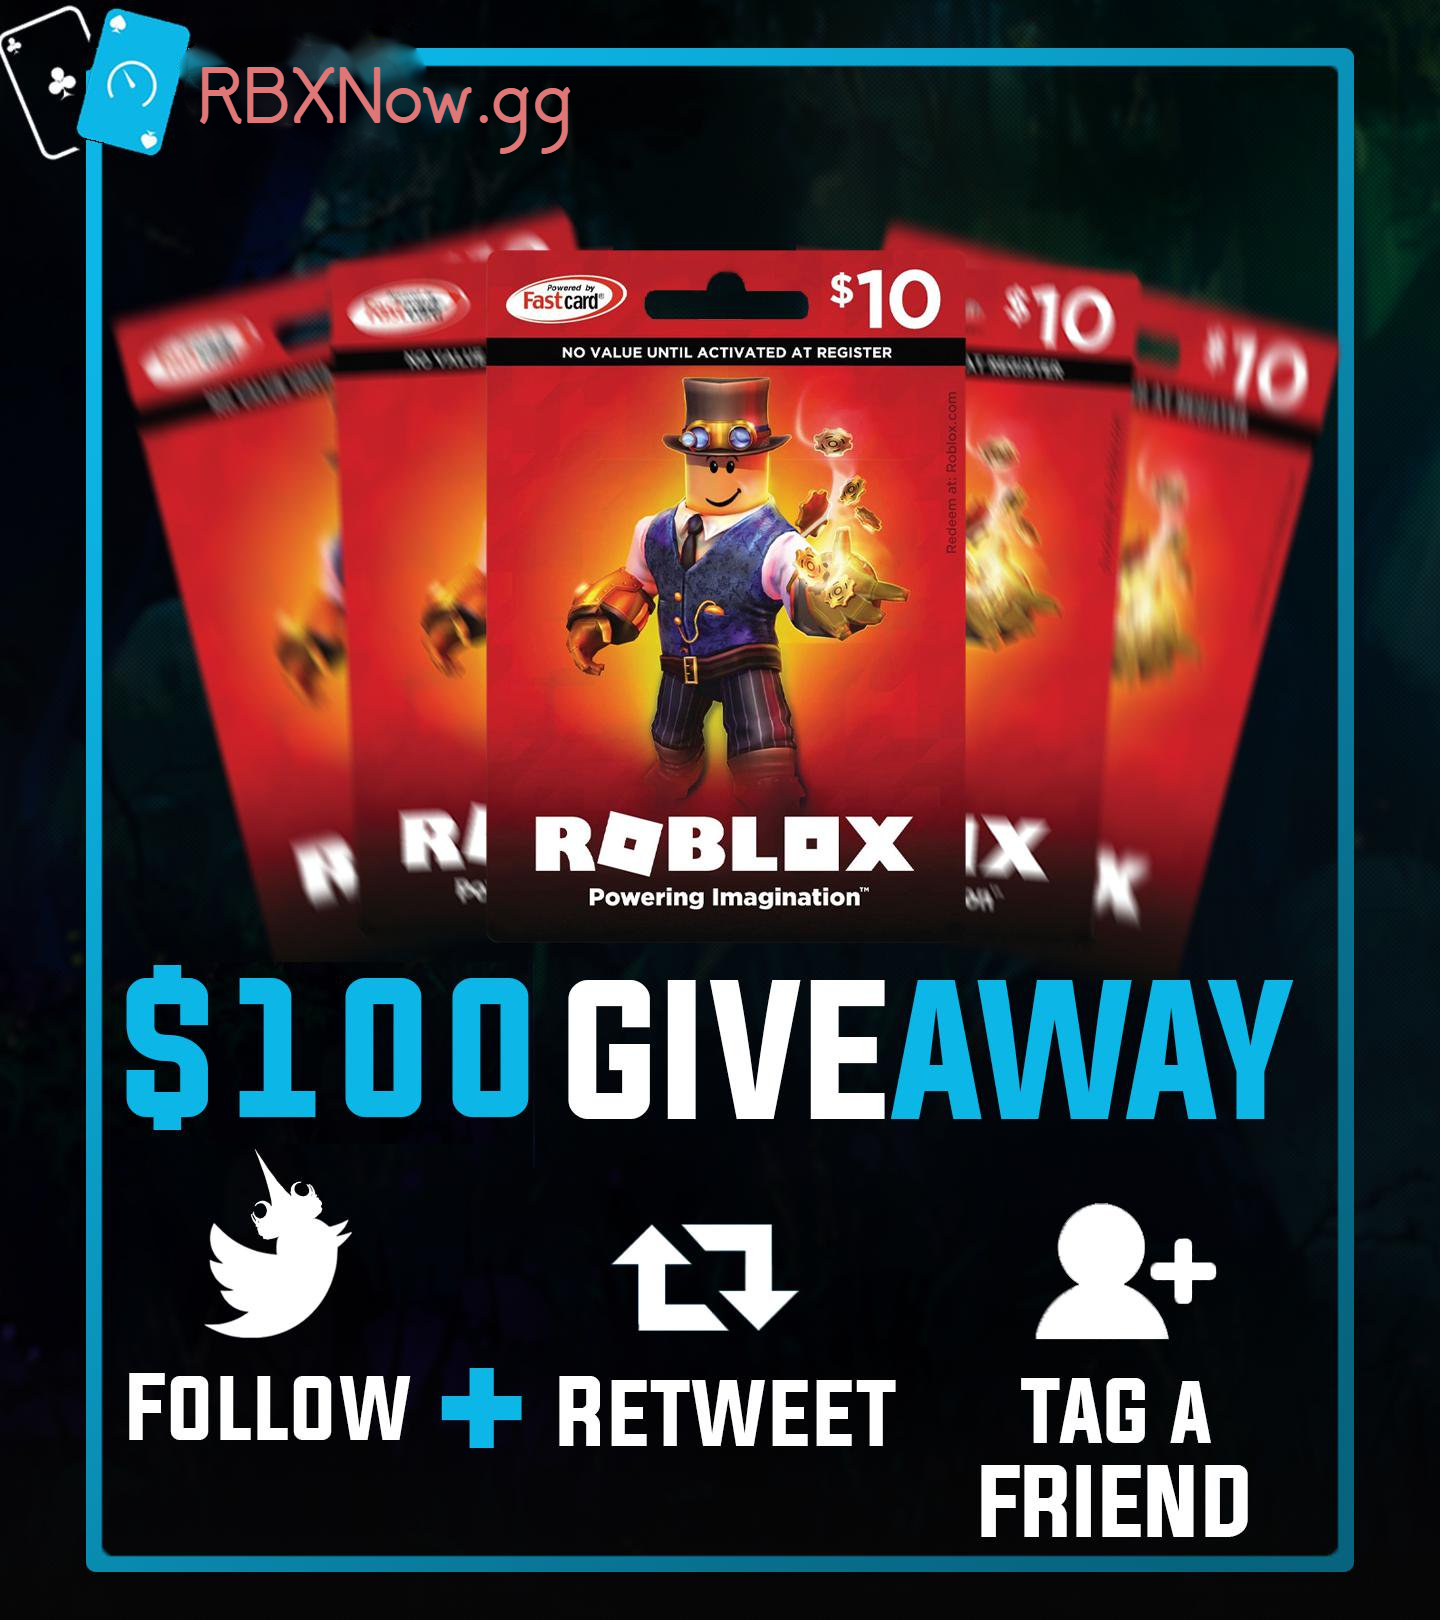 Rbx Now Gg Rbxfast Gg On Twitter 100 Roblox Giftcards 25 Winners How To Enter Complete Offers From The Robux Walls To Have Higher Chance Of Winning Https T Co Tkvtnn7reg Follow Instagram Https T Co 1umxqtvlvy Follow Rbxnowgg Retweet